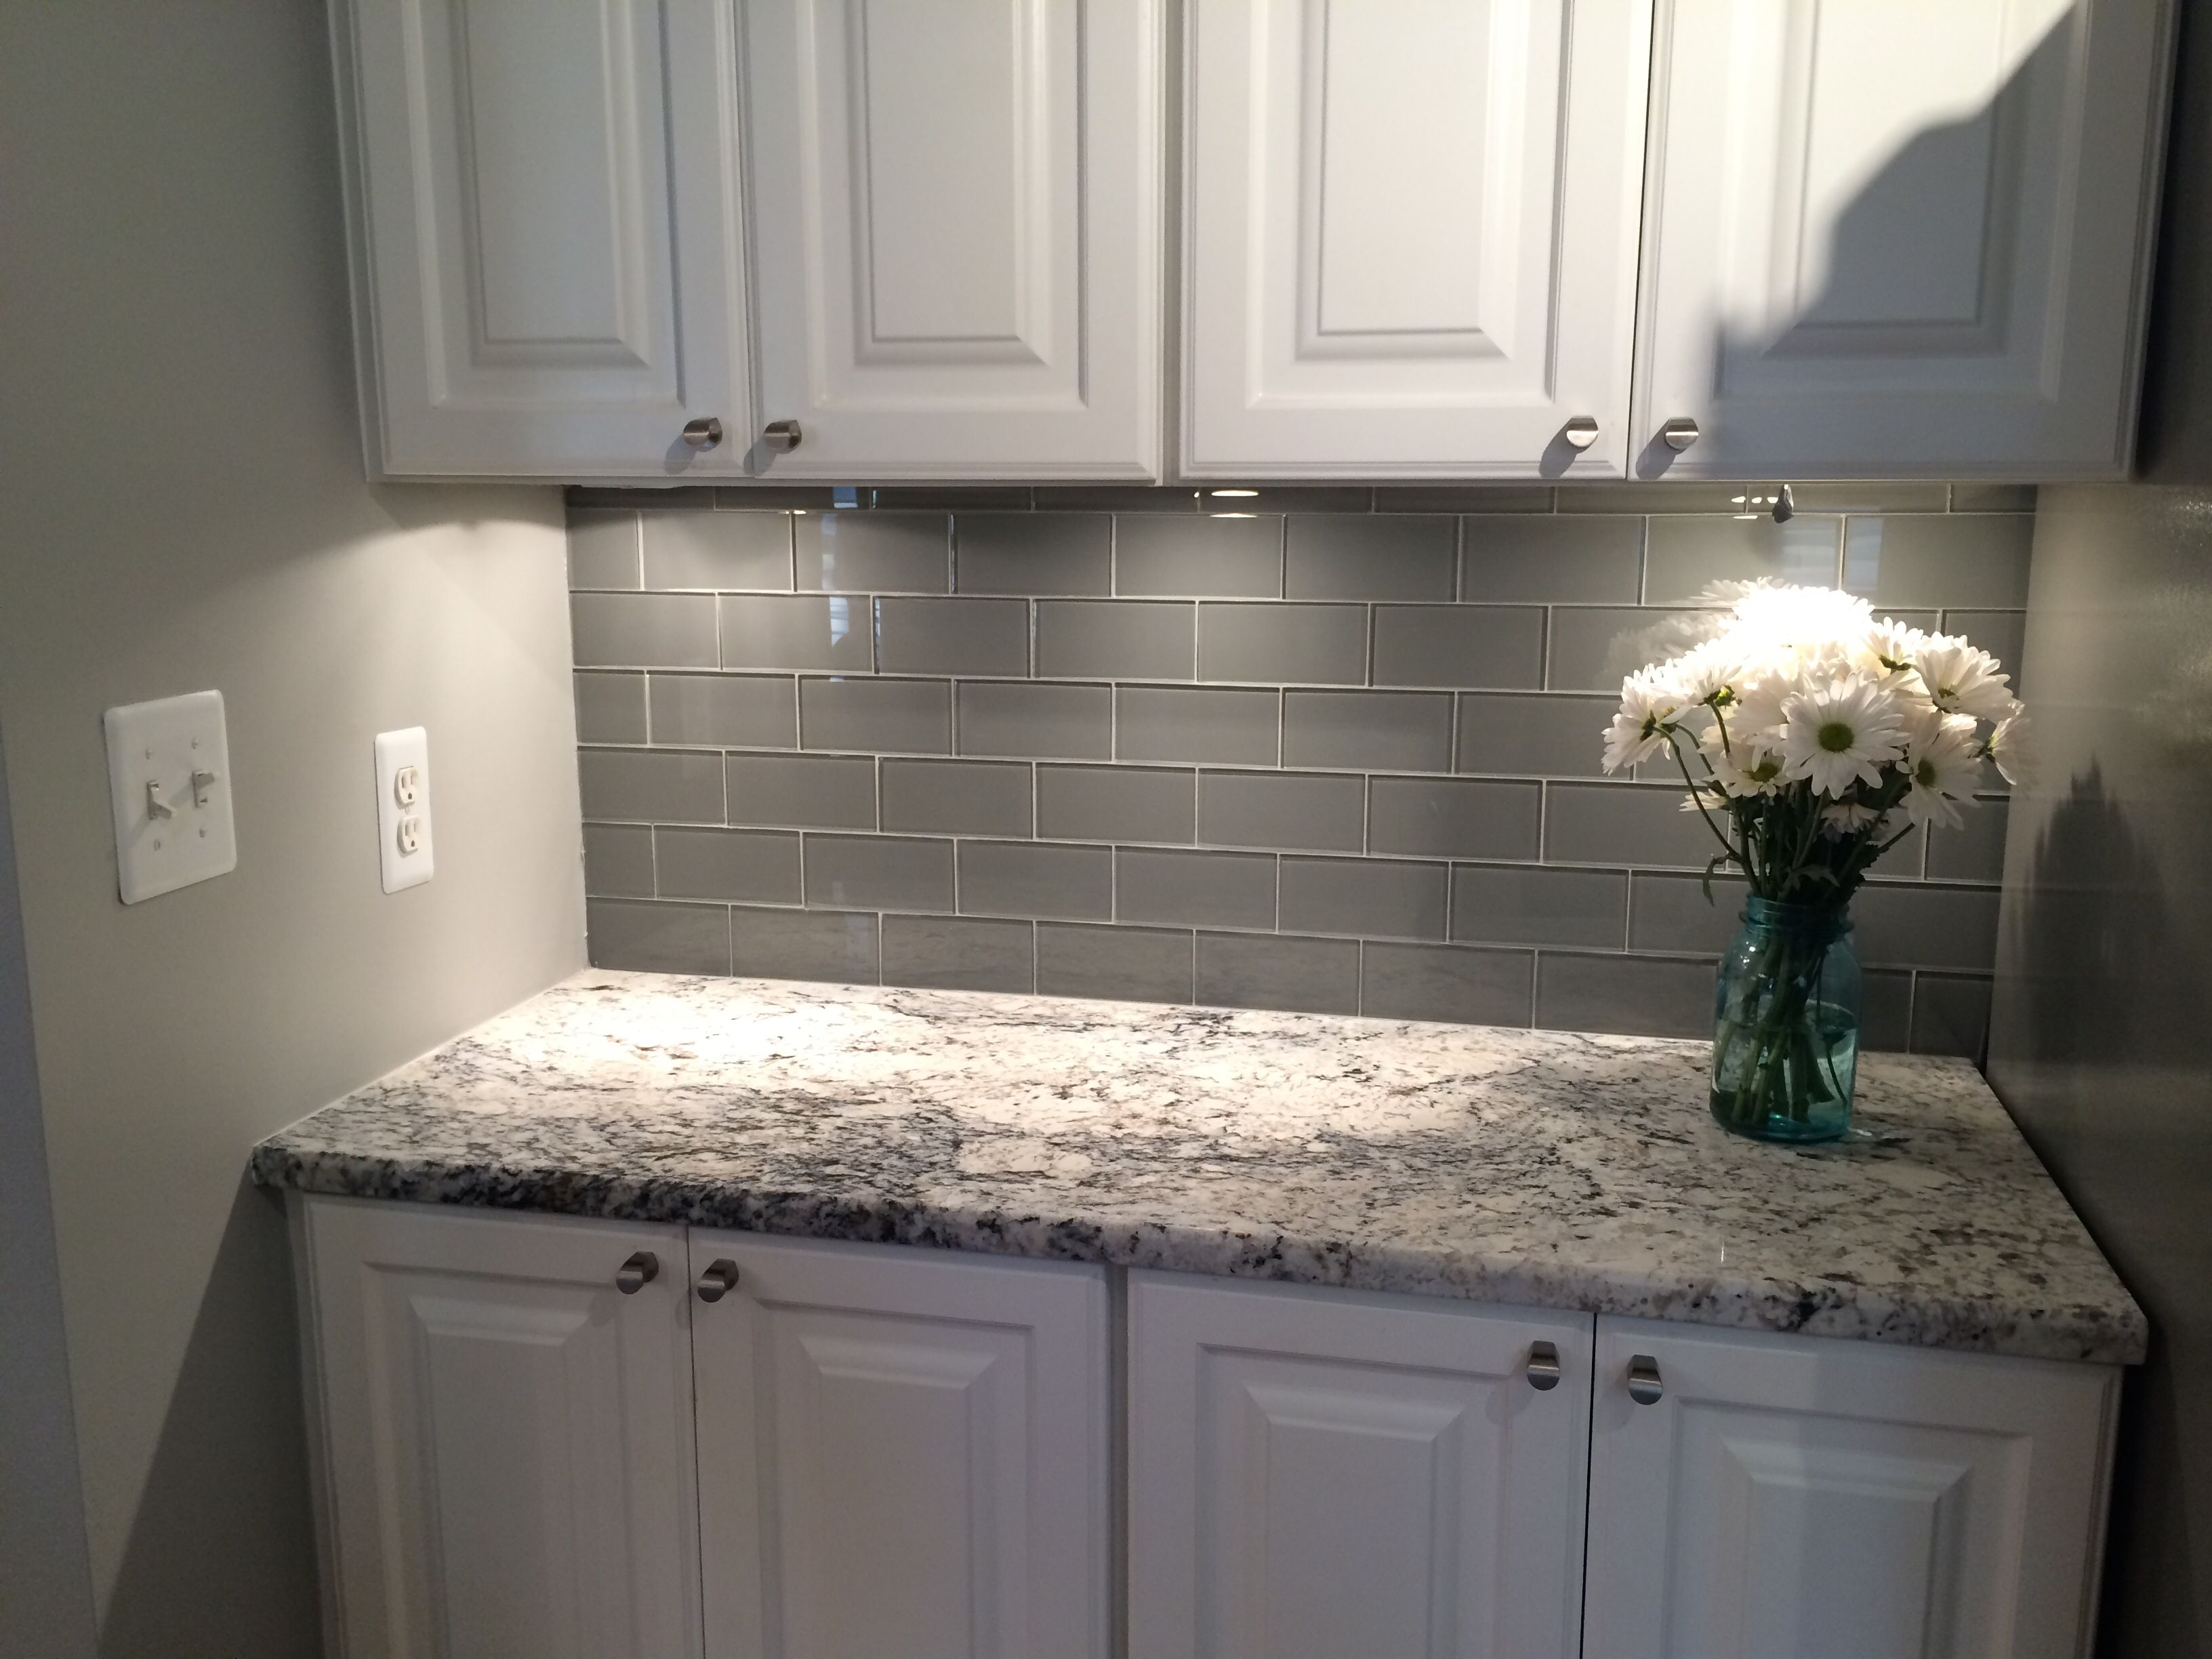 Modern Kitchen Design With Azul Platino Granite Countertop White Paint Cabinet Also Tile Backsplash For